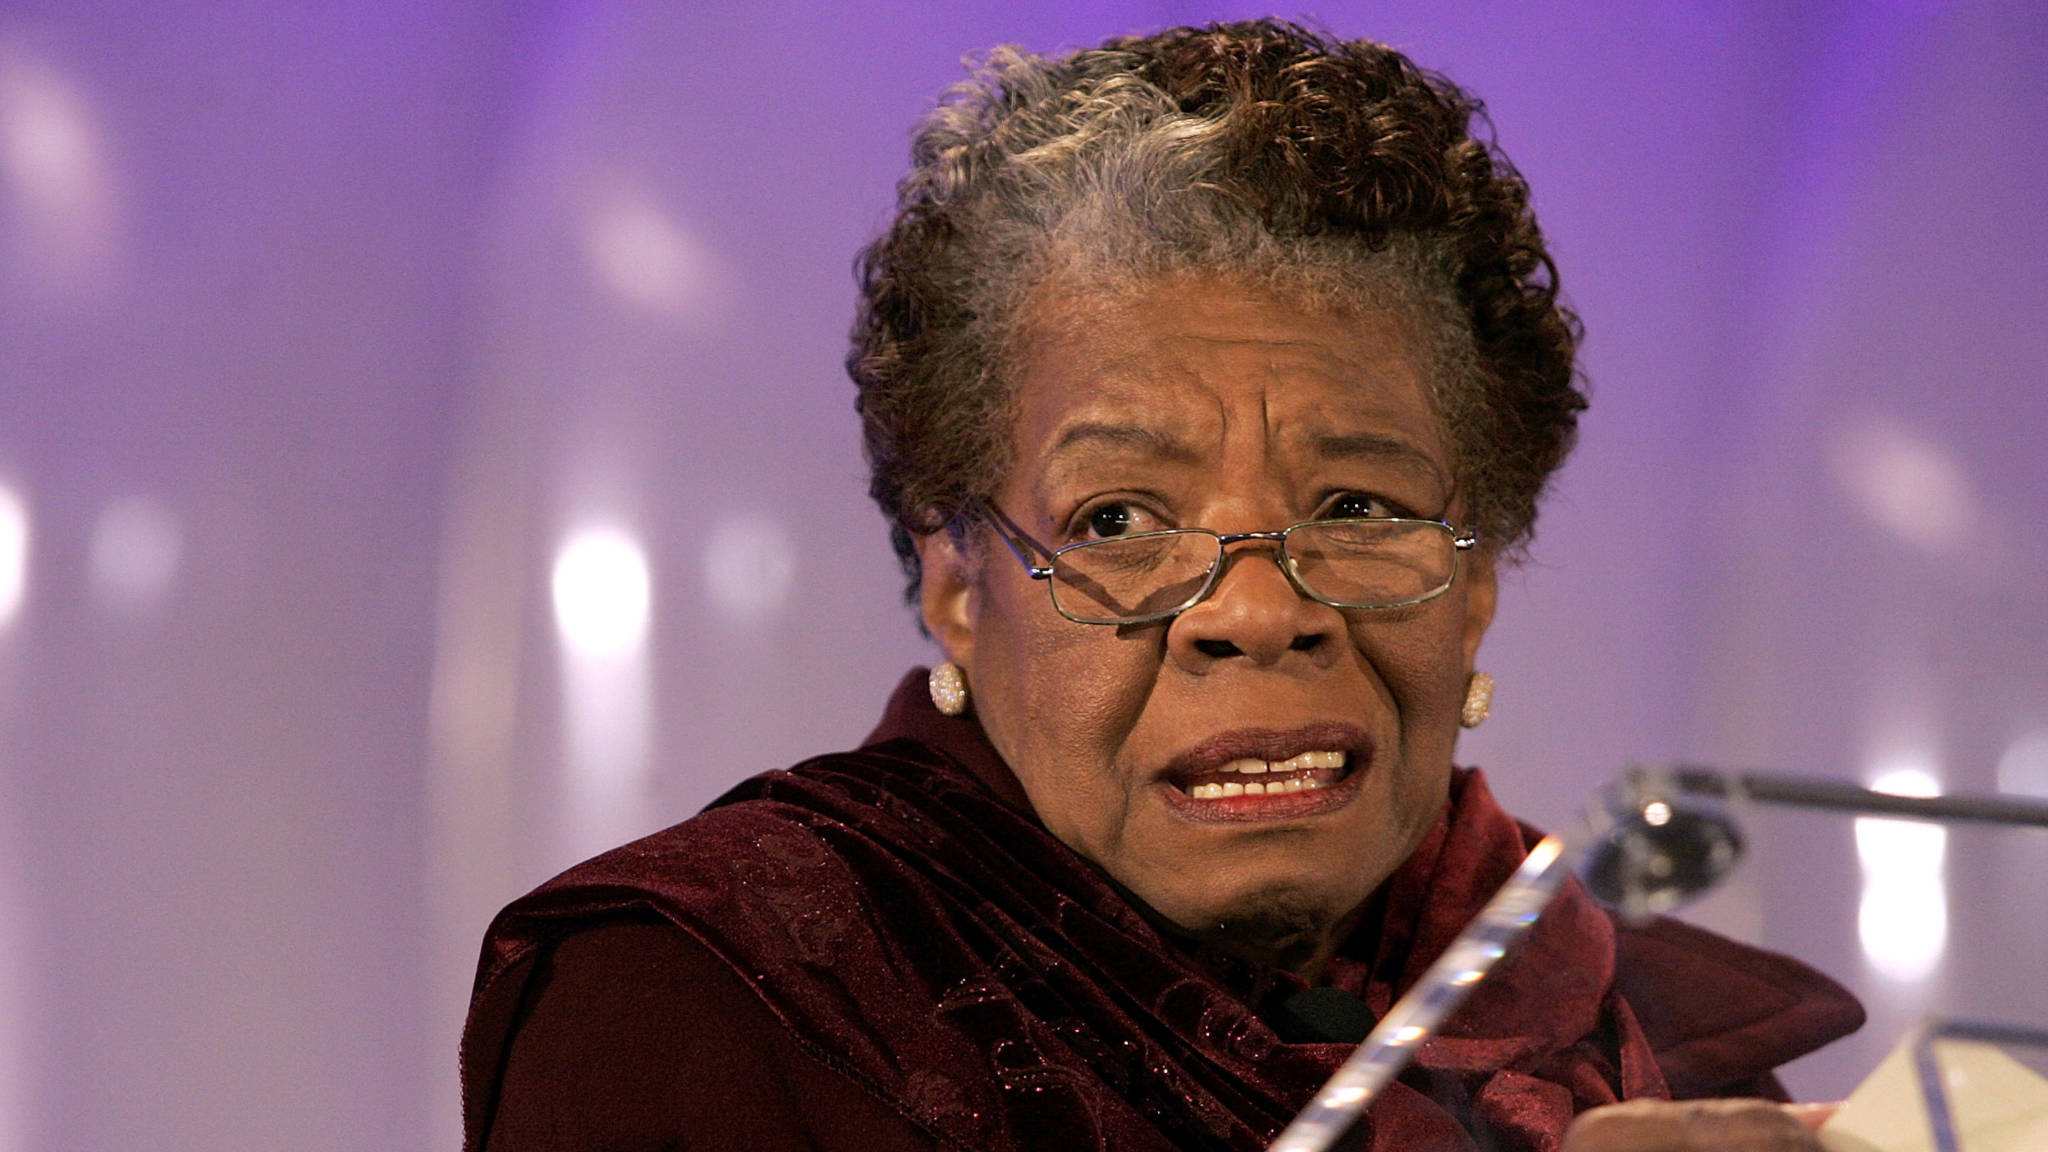 That's Ms. Maya Angelou To You!